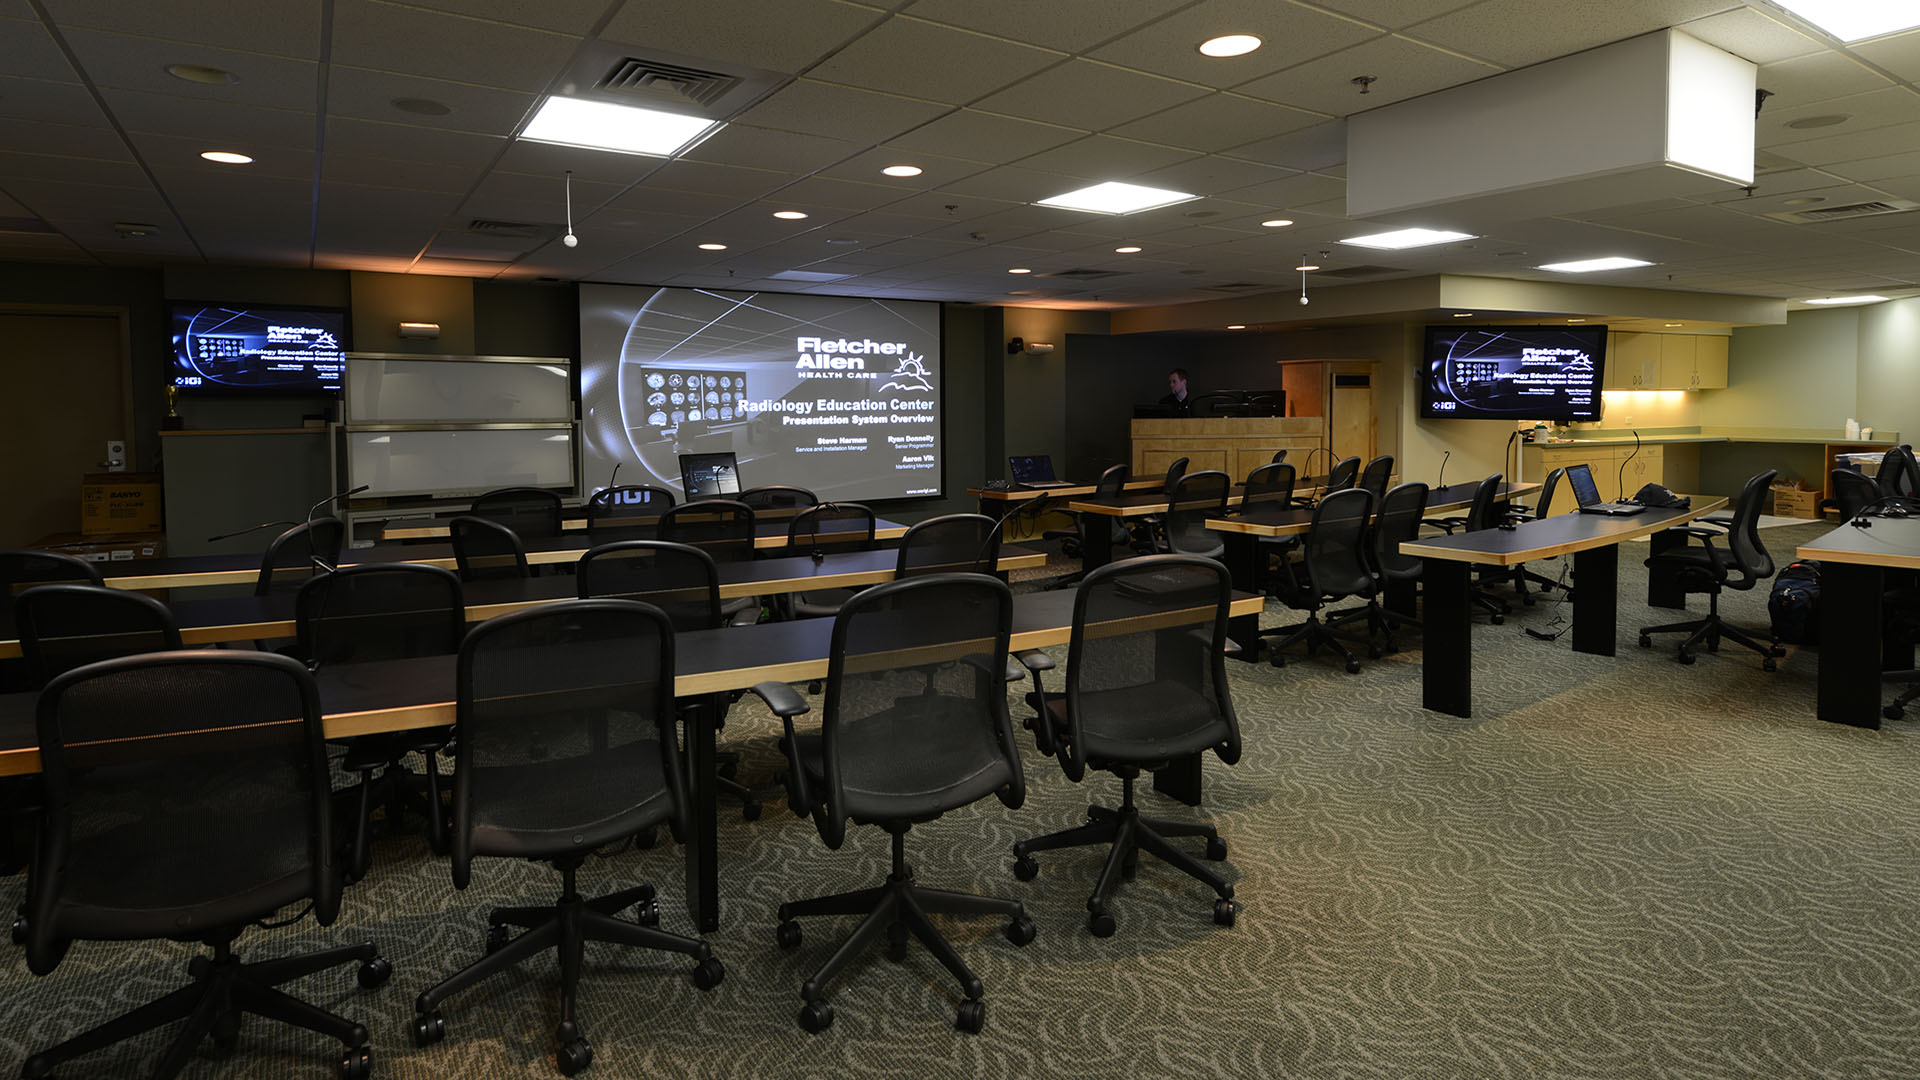 health system 4K custom projection system powerwall